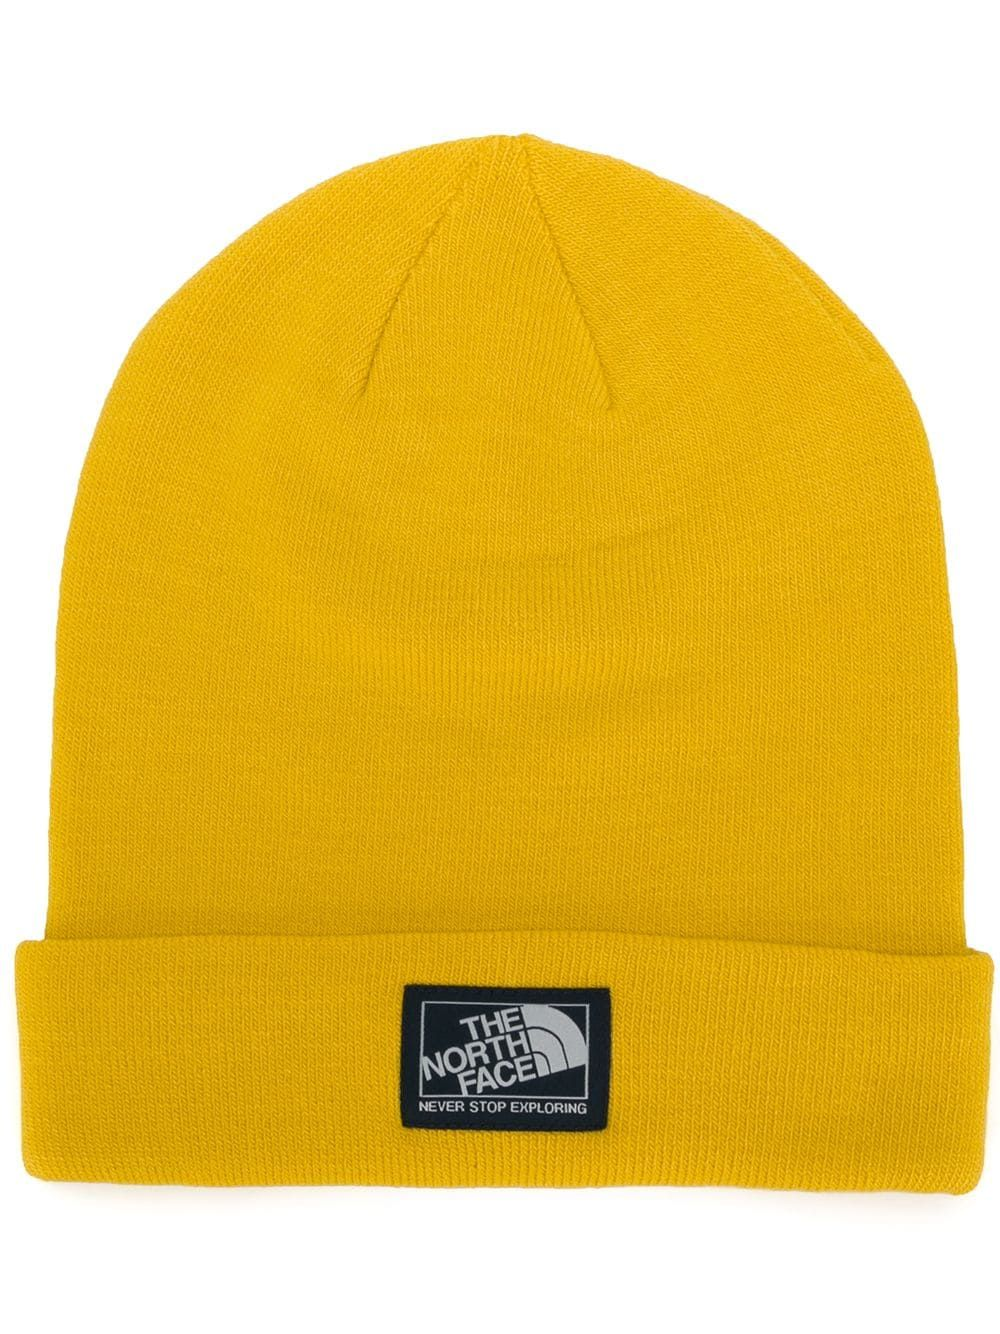 THE NORTH FACE THE NORTH FACE BASIC BEANIE HAT - YELLOW.  thenorthface ae775d4f680